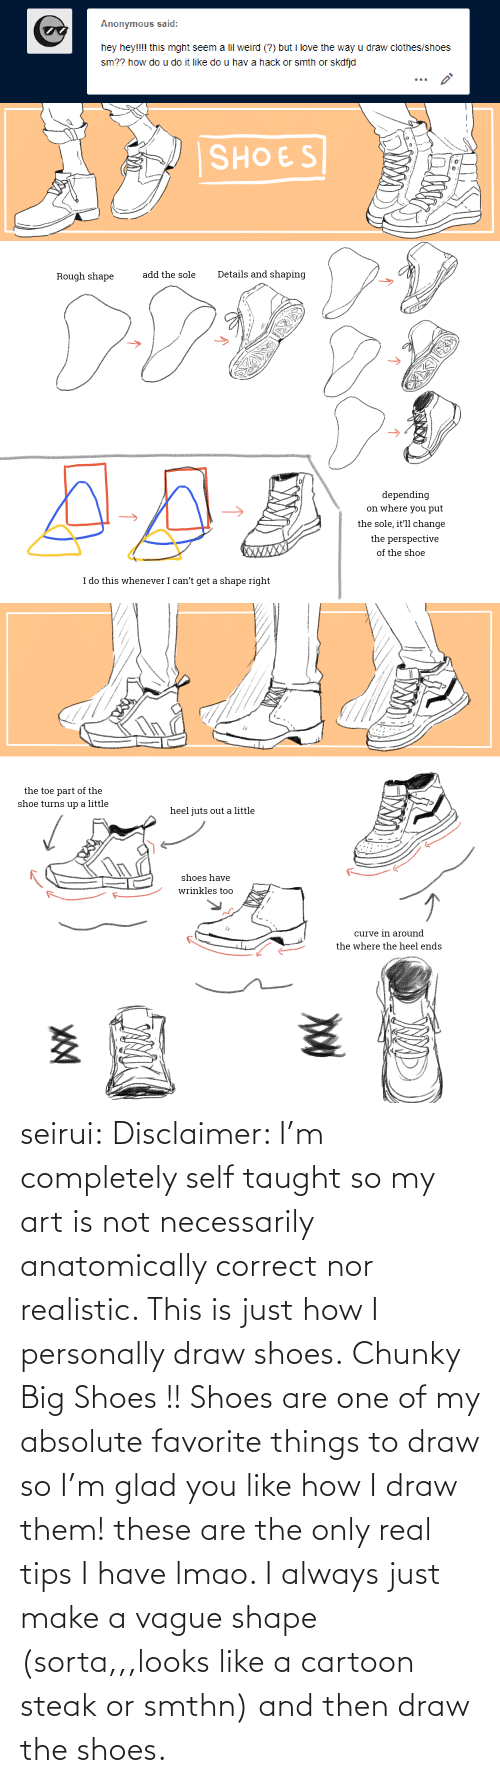 Is Just: Anonymous said:  hey hey!!!! this mght seem a lil weird (?) but i love the way u draw clothes/shoes  sm?? how do u do it like do u hav a hack or smth or skdfjd   SHOES  Details and shaping  add the sole  Rough shape  depending  on where you put  the sole, it'll change  the perspective  XWXXX  of the shoe  I do this whenever I can't get a shape right   the toe part of the  shoe turns up a little  heel juts out a little  shoes have  wrinkles too  curve in around  the where the heel ends seirui: Disclaimer: I'm completely self taught so my art is not necessarily anatomically correct nor realistic. This is just how I personally draw shoes. Chunky Big Shoes !! Shoes are one of my absolute favorite things to draw so I'm glad you like how I draw them! these are the only real tips I have lmao. I always just make a vague shape (sorta,,,looks like a cartoon steak or smthn) and then draw the shoes.